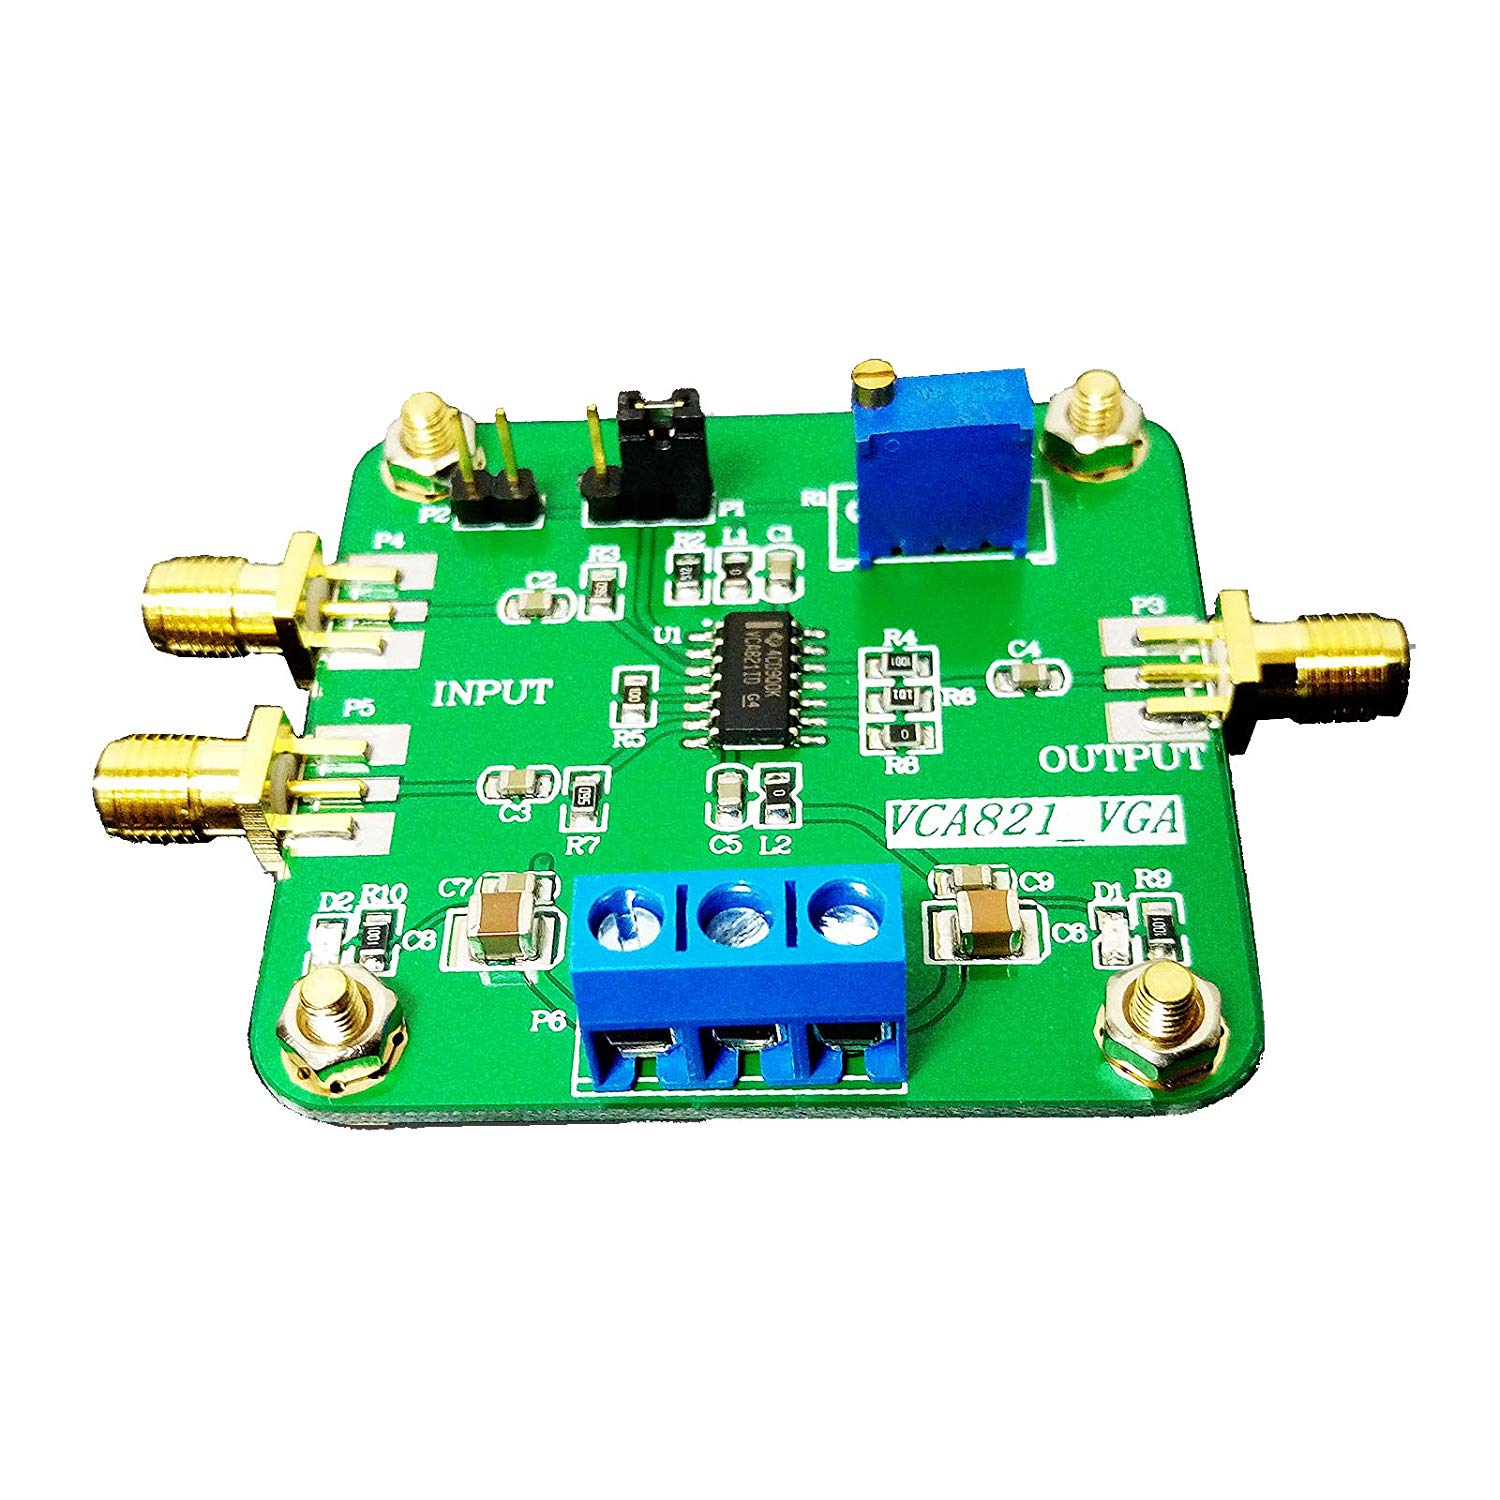 Cheap Electronic Amplifier Find Deals On Line Tda2009 Stereo Hifi Class Ab Power Circuit Get Quotations 1 Pc Voltage Controlled Gain Vca821 Module Race Programmable Ggain